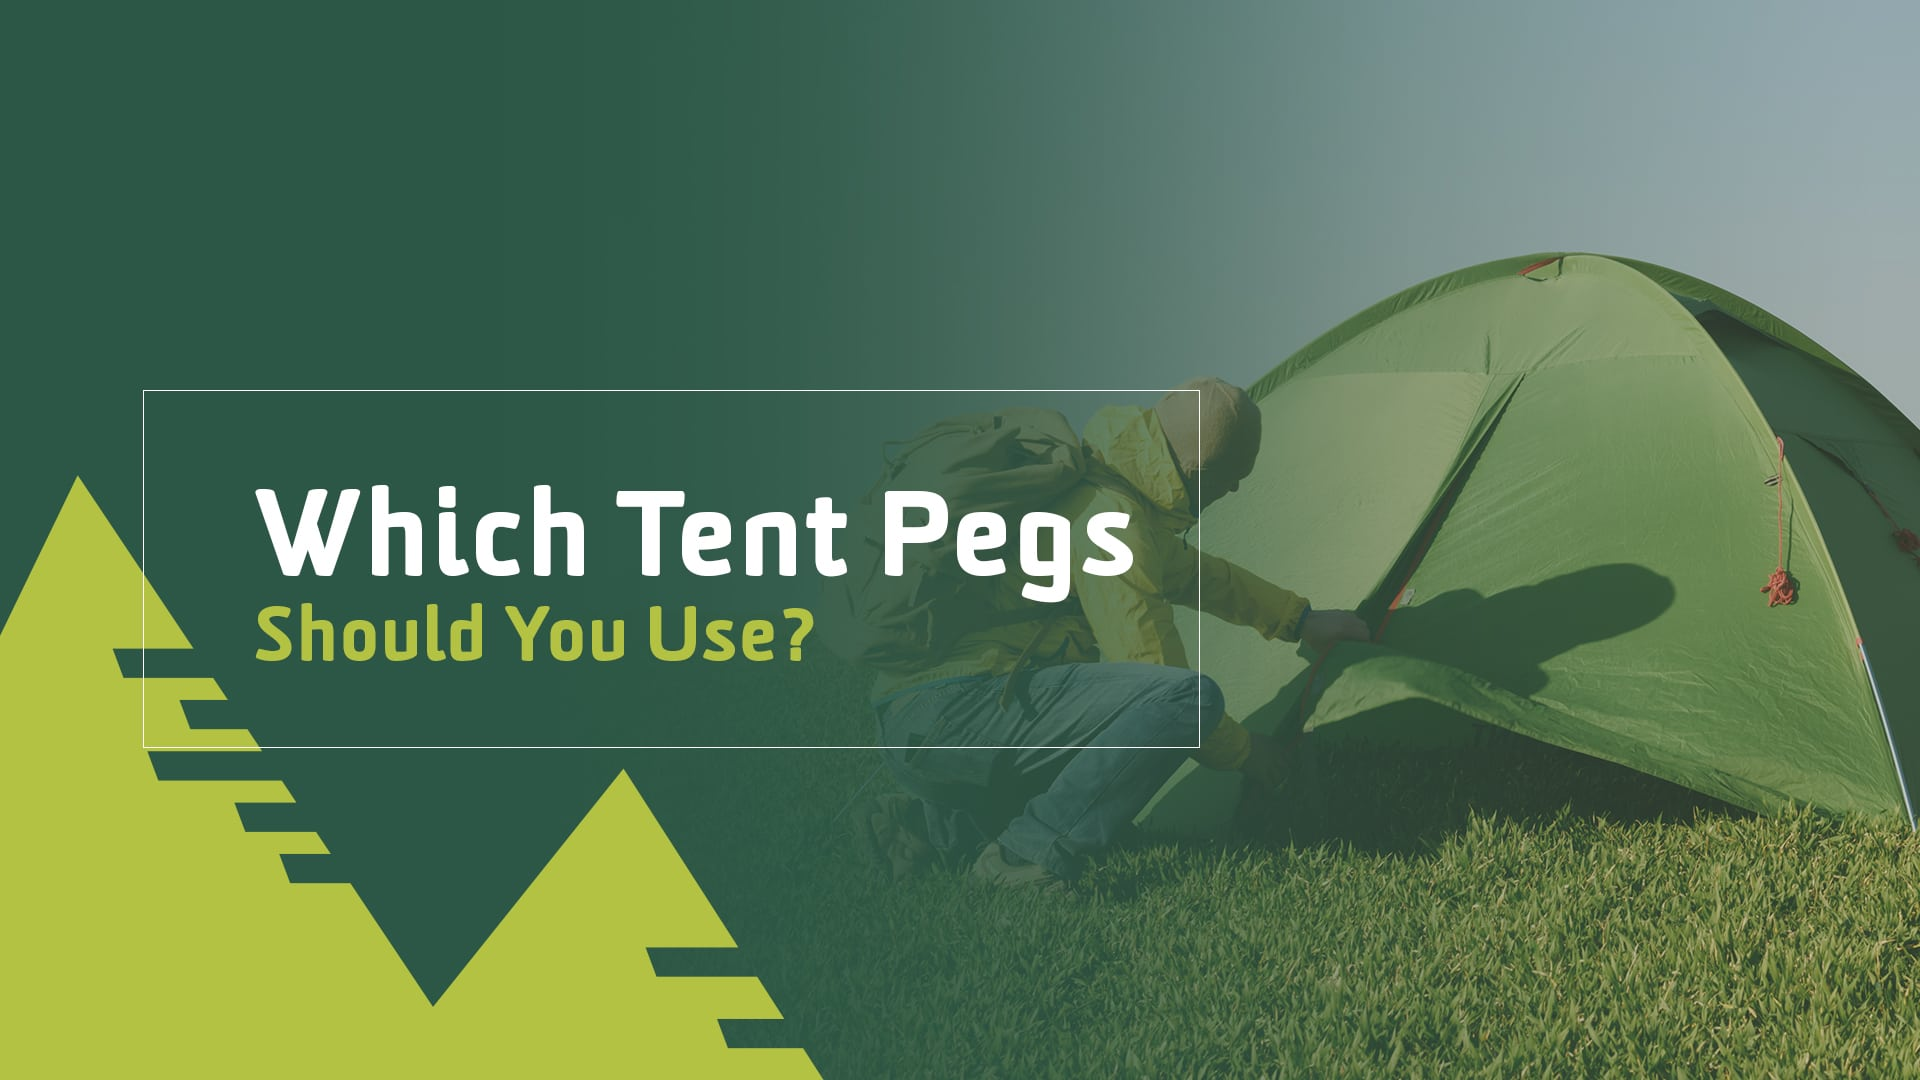 Which Tent Pegs Should You Use? A Camper's Guide